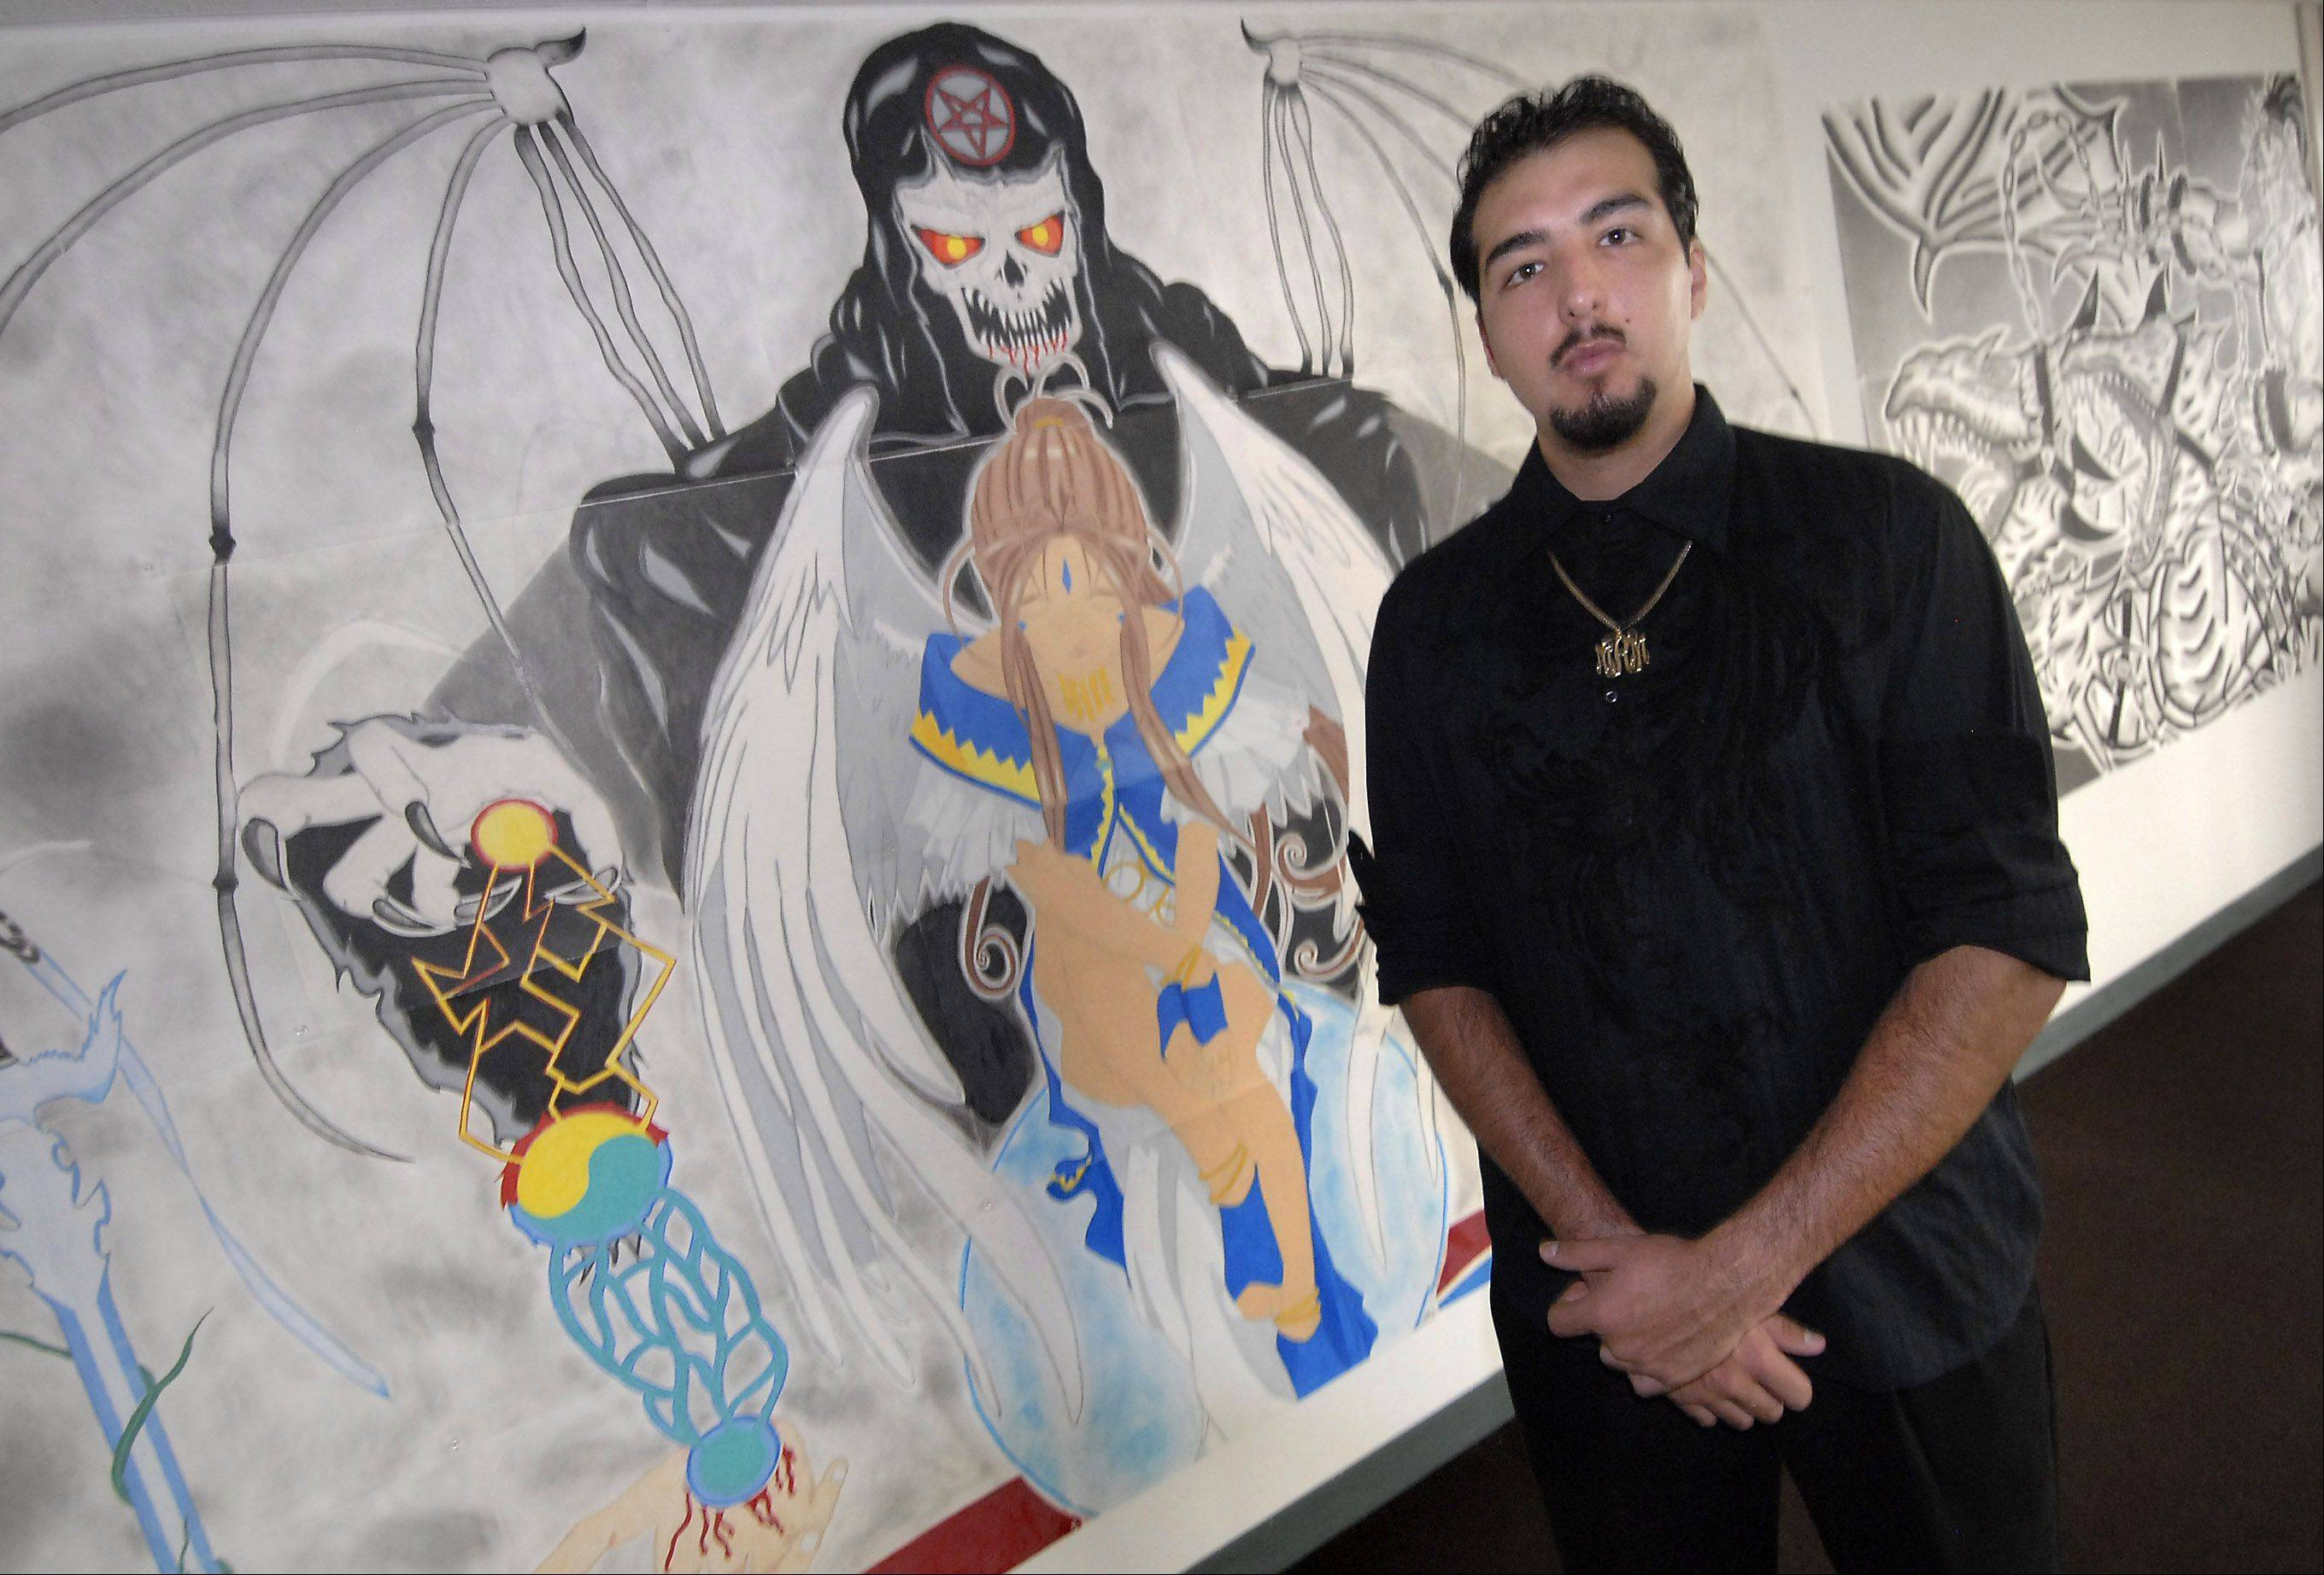 Working in his small apartment in Hanover Park, self-taught artist Raul Maldonado draws his works on pieces of poster board and assembles them later. His largest work, a portion of which is behind him, consists of 81 individual poster boards.